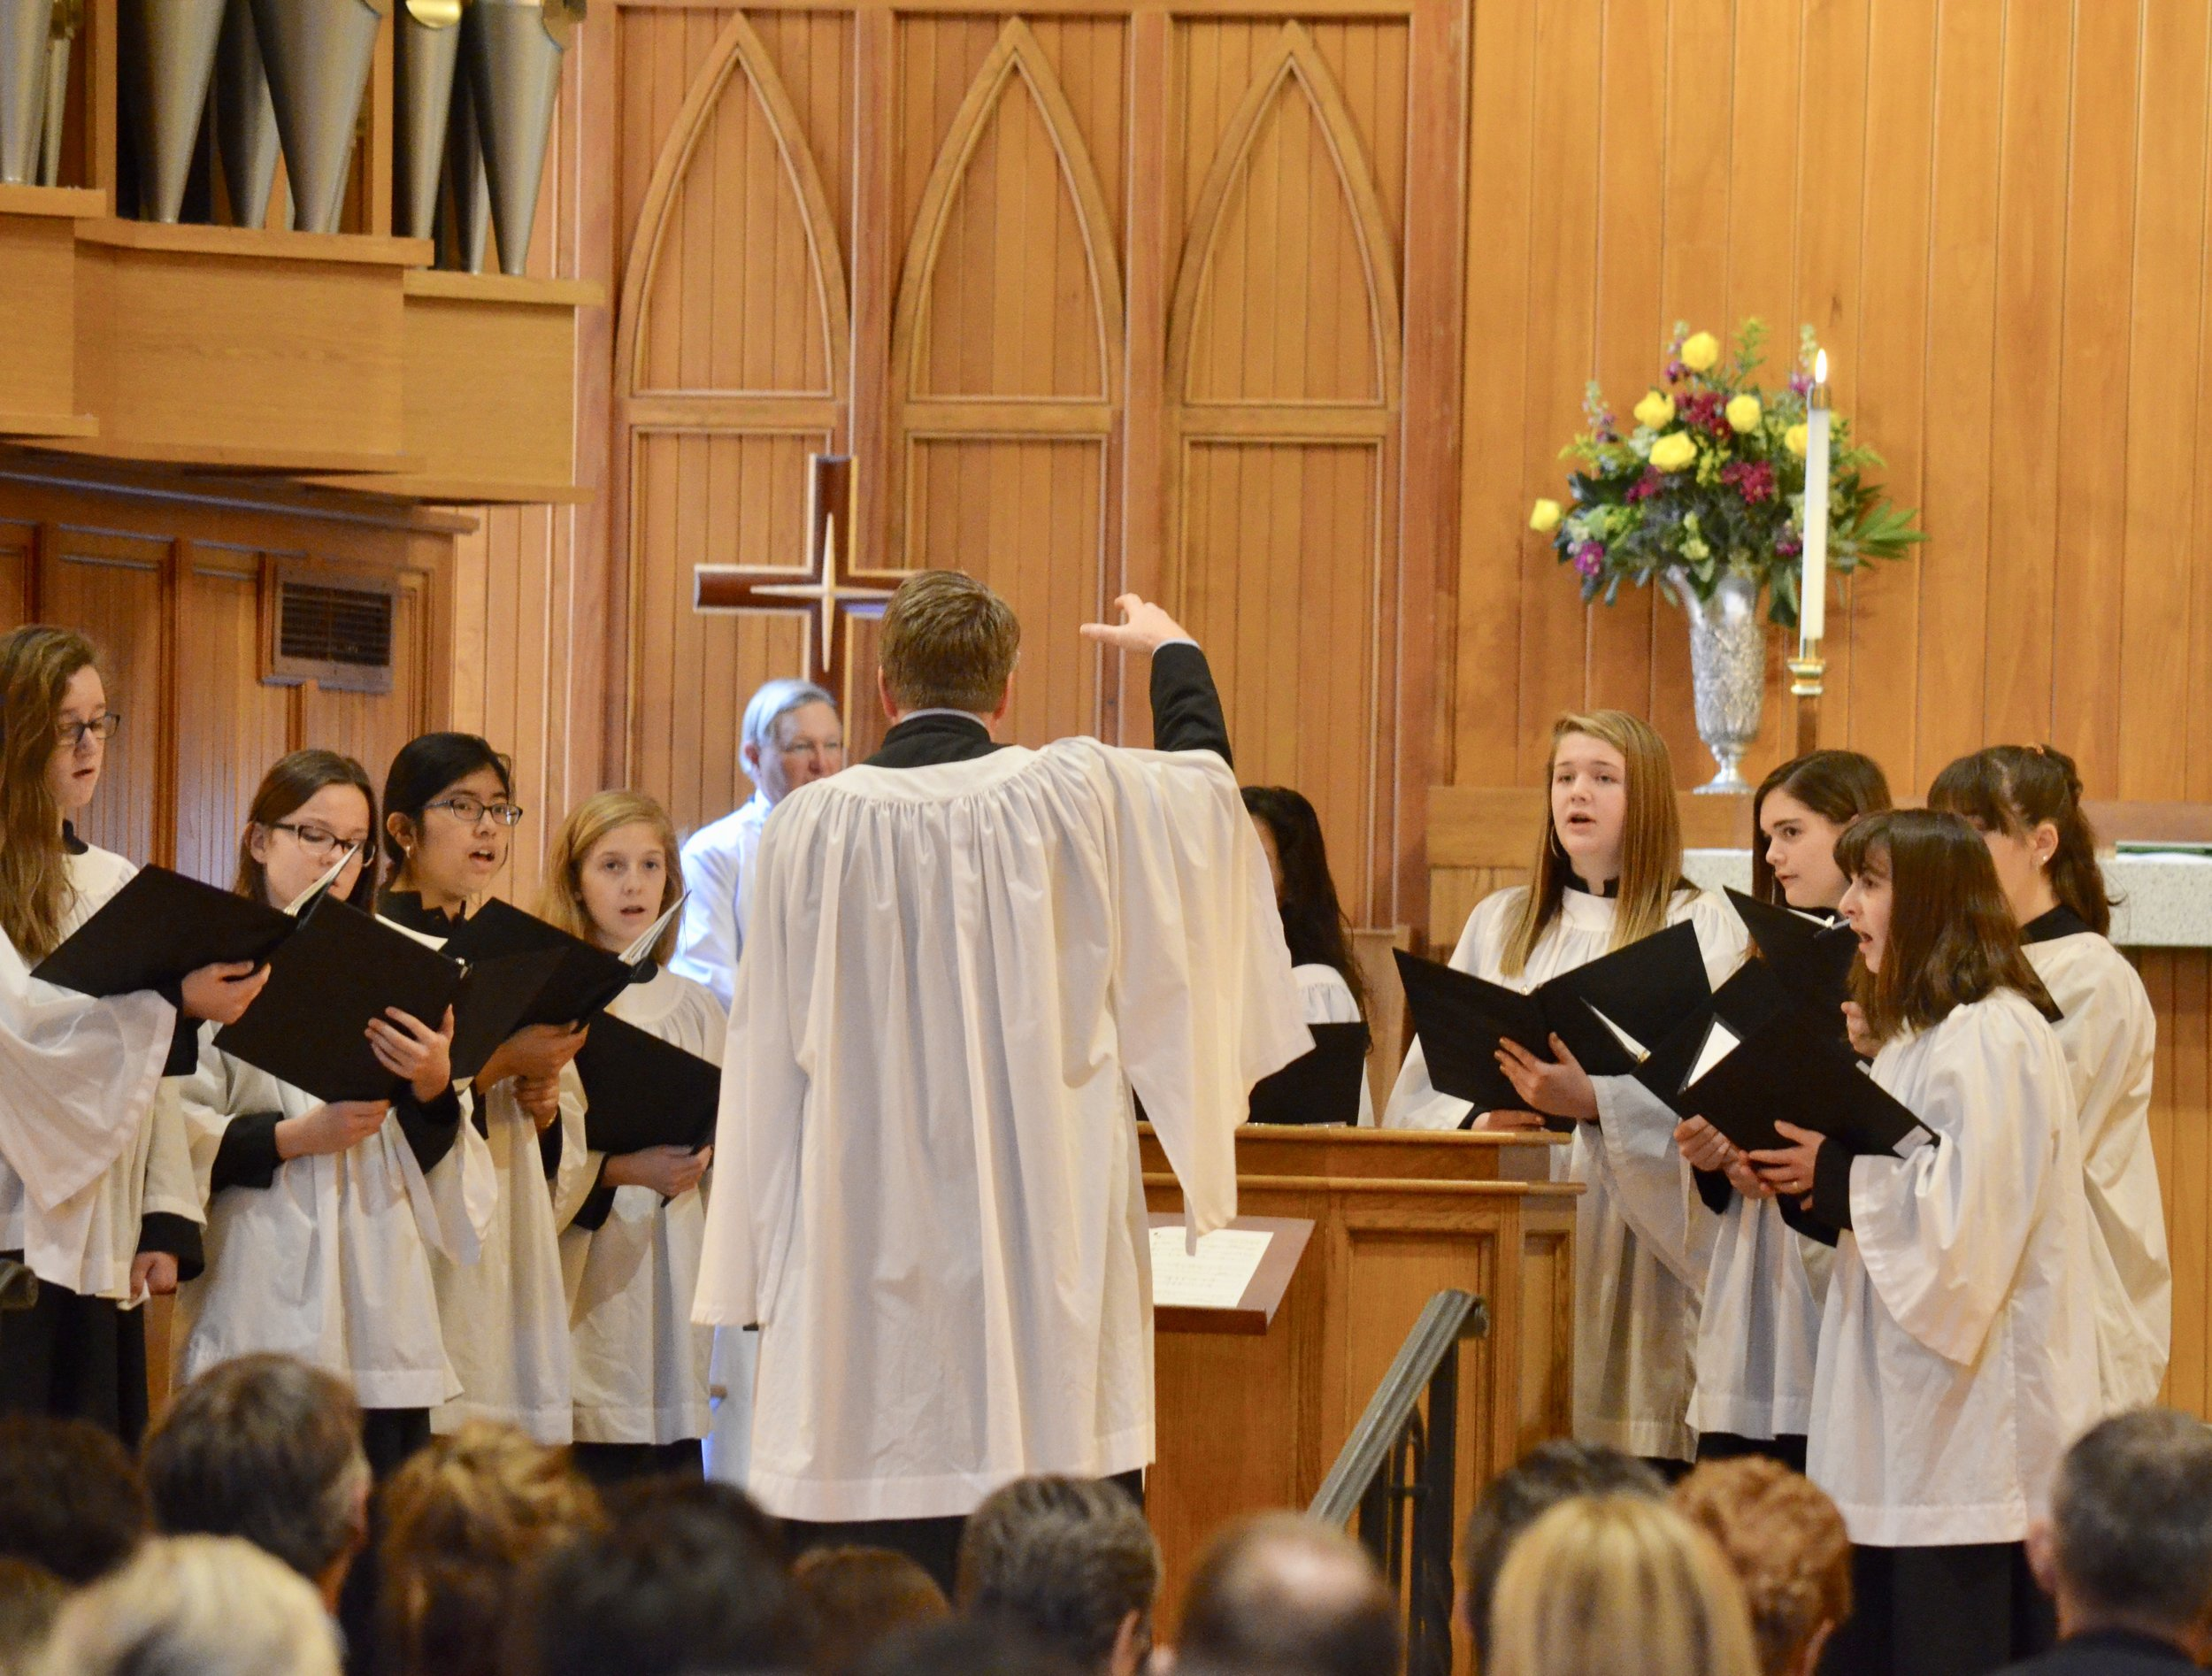 The St. Cecilia Girls Choir at St. Michael's Episcopal Church, Raleigh